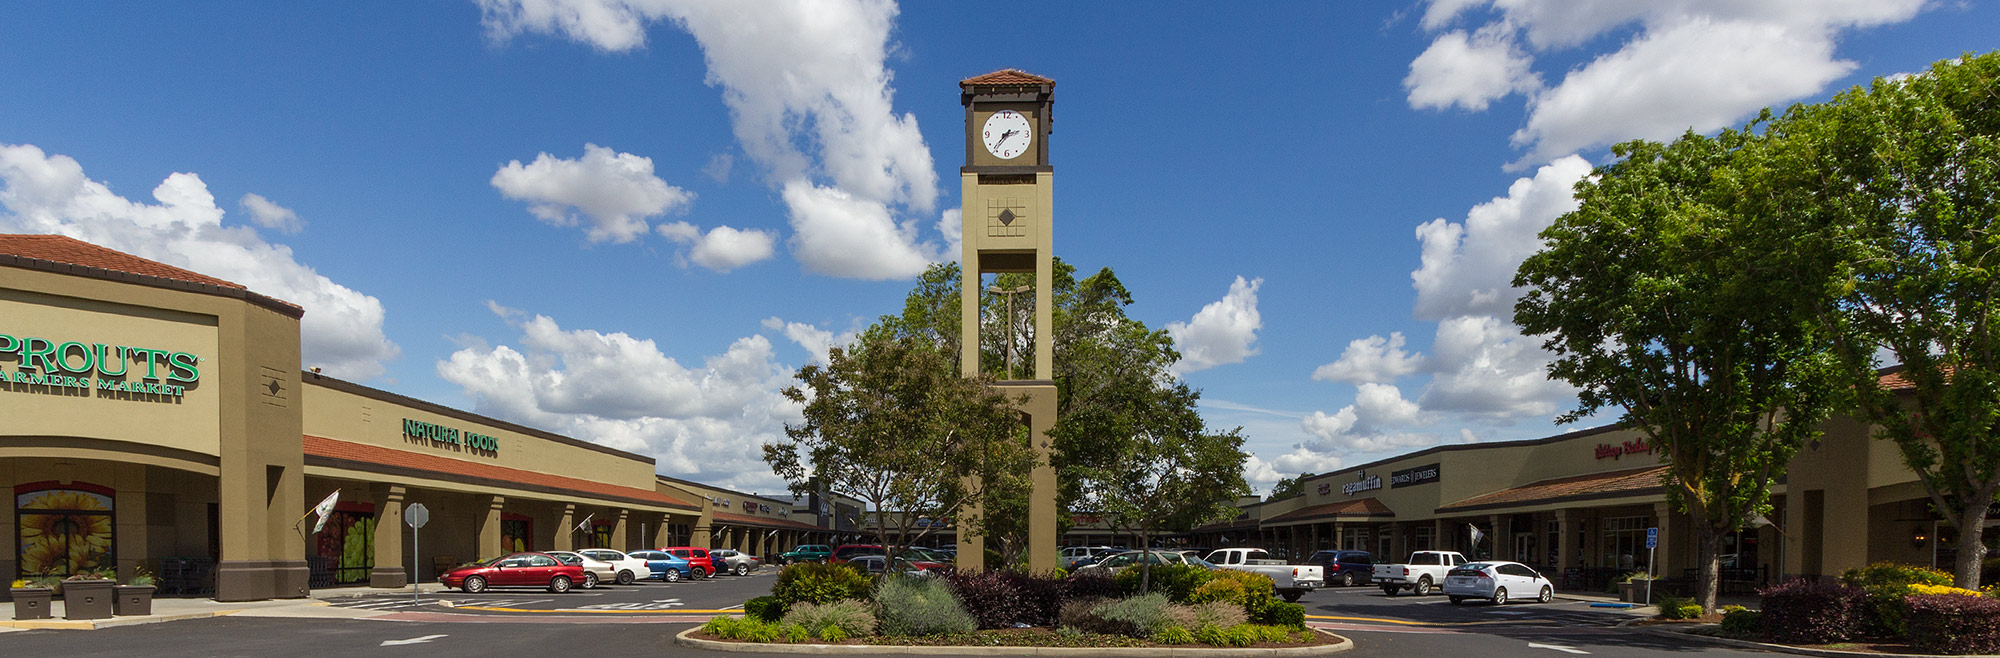 Garden-style shopping experience of McHenry Village